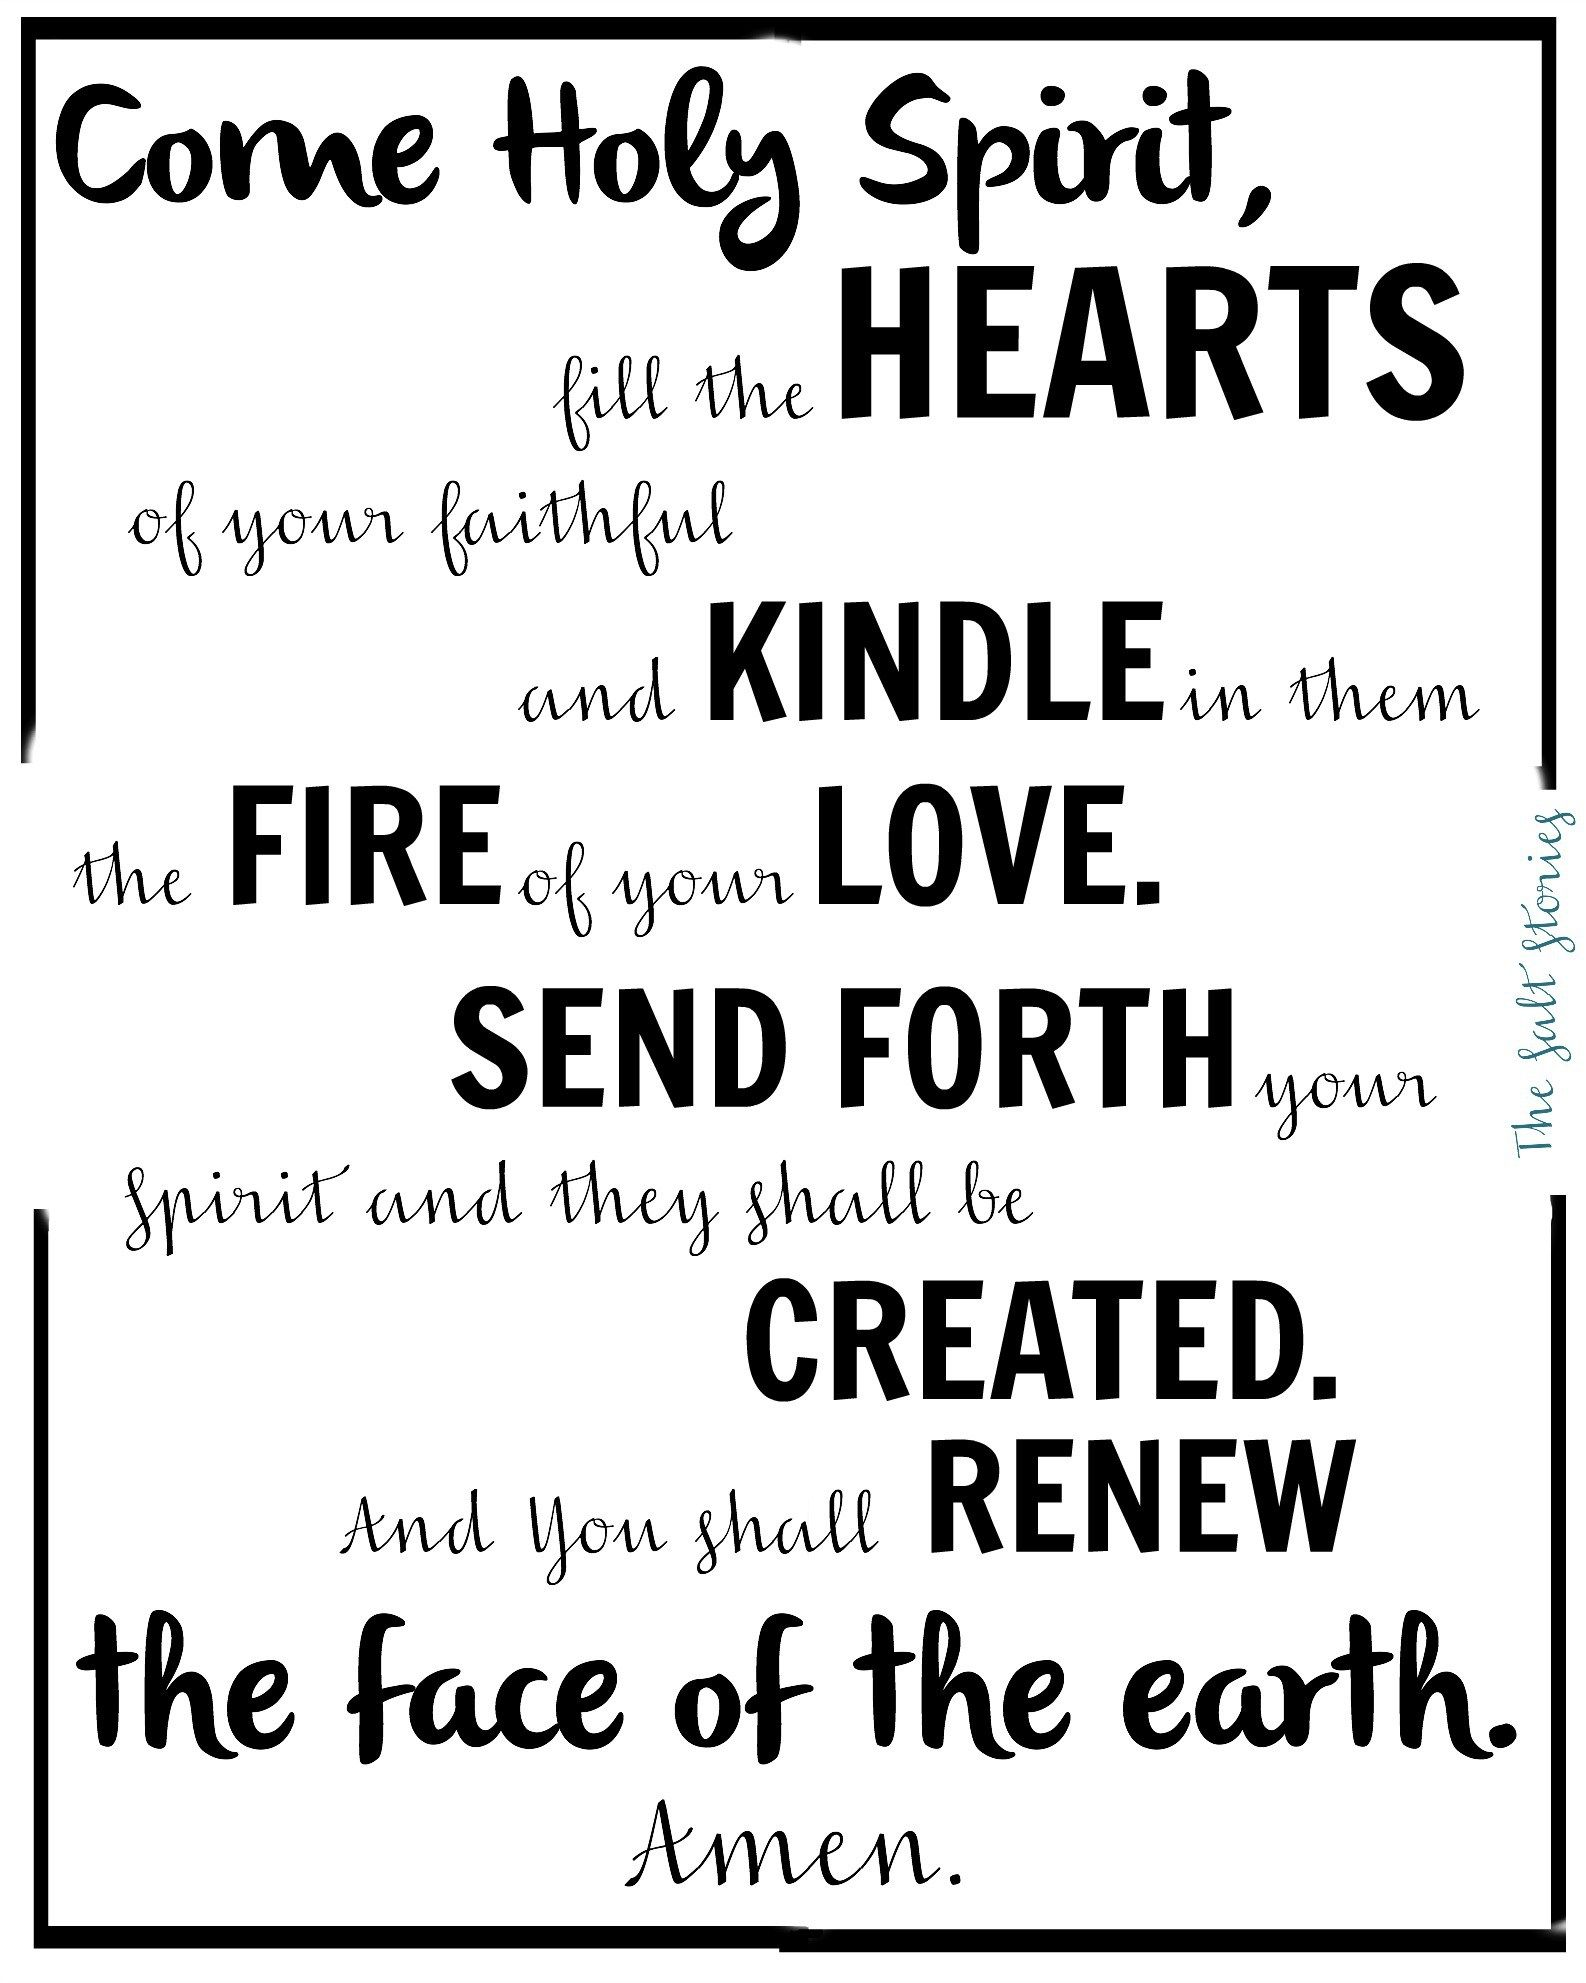 photo relating to Come Holy Spirit Prayer Printable called Appear Holy Spirit.. In just Remembrance @The Salt Reports